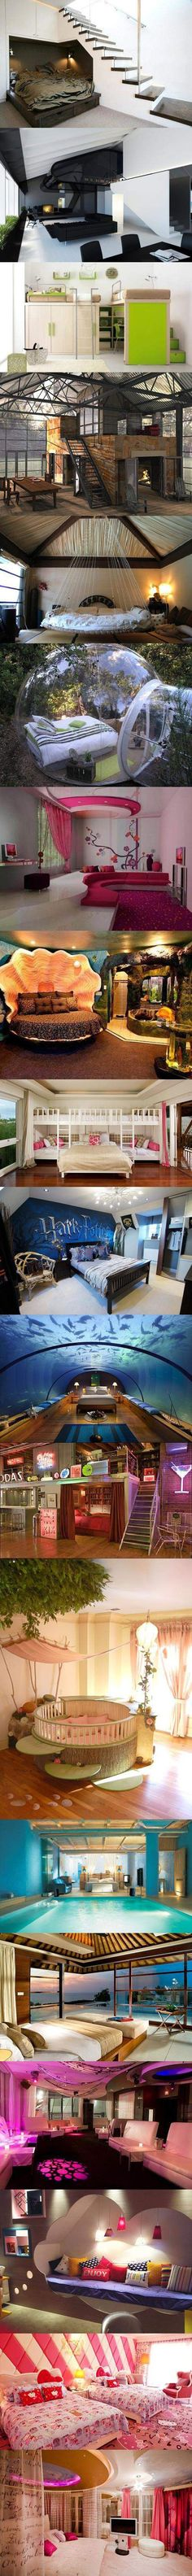 most amazing bedrooms I've ever seen.